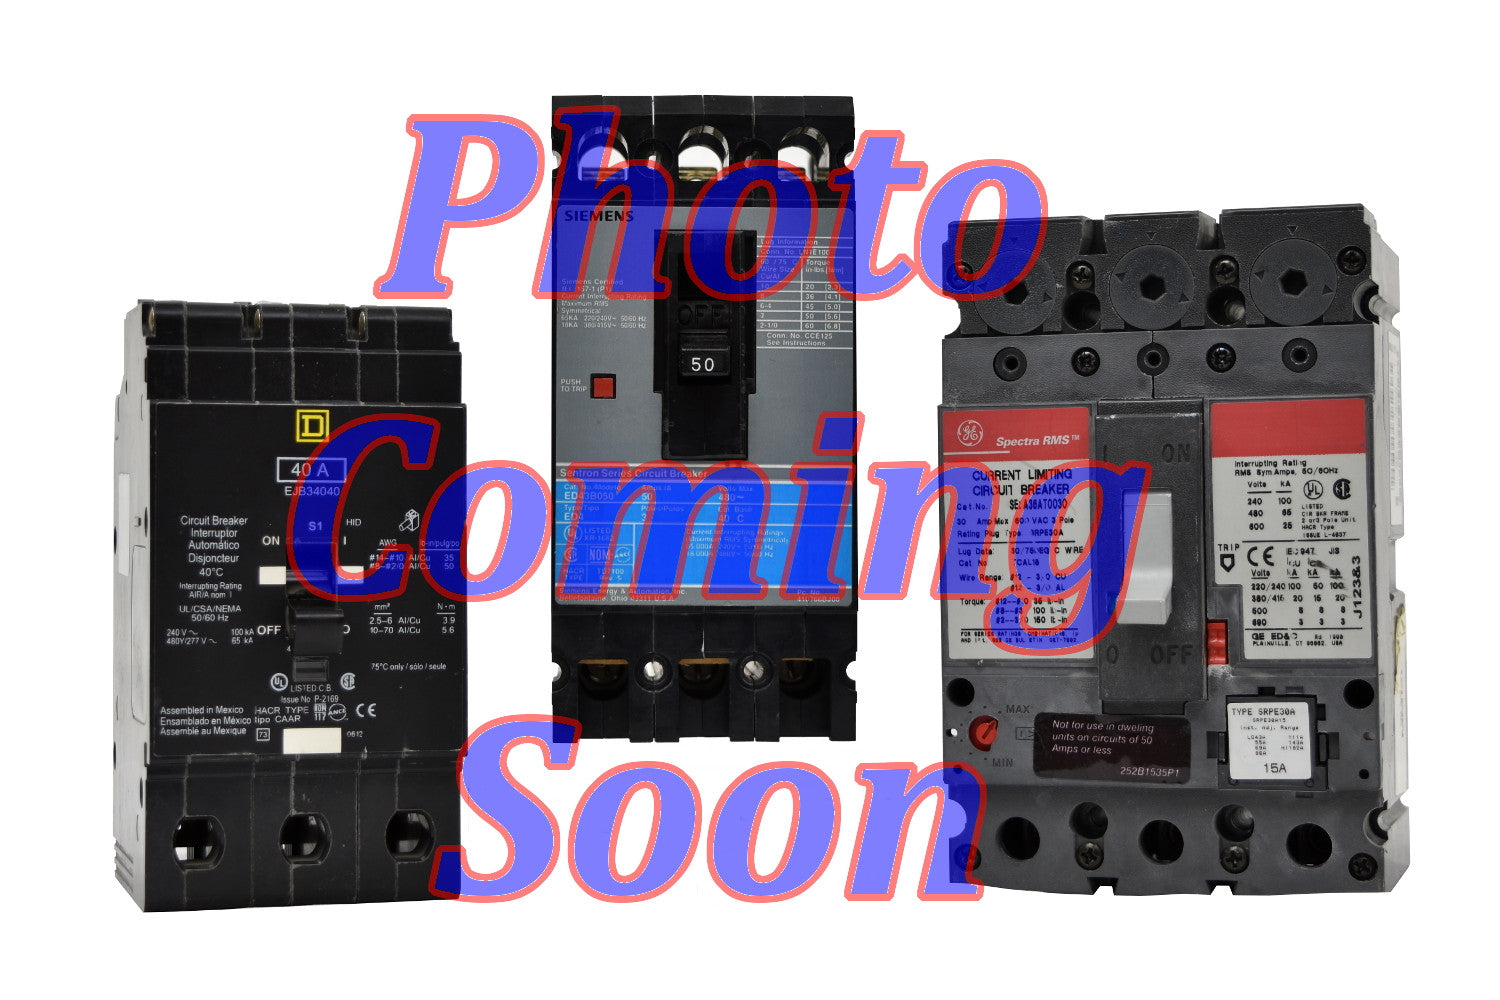 General Electric FCN36TE045R1 Circuit Breakers